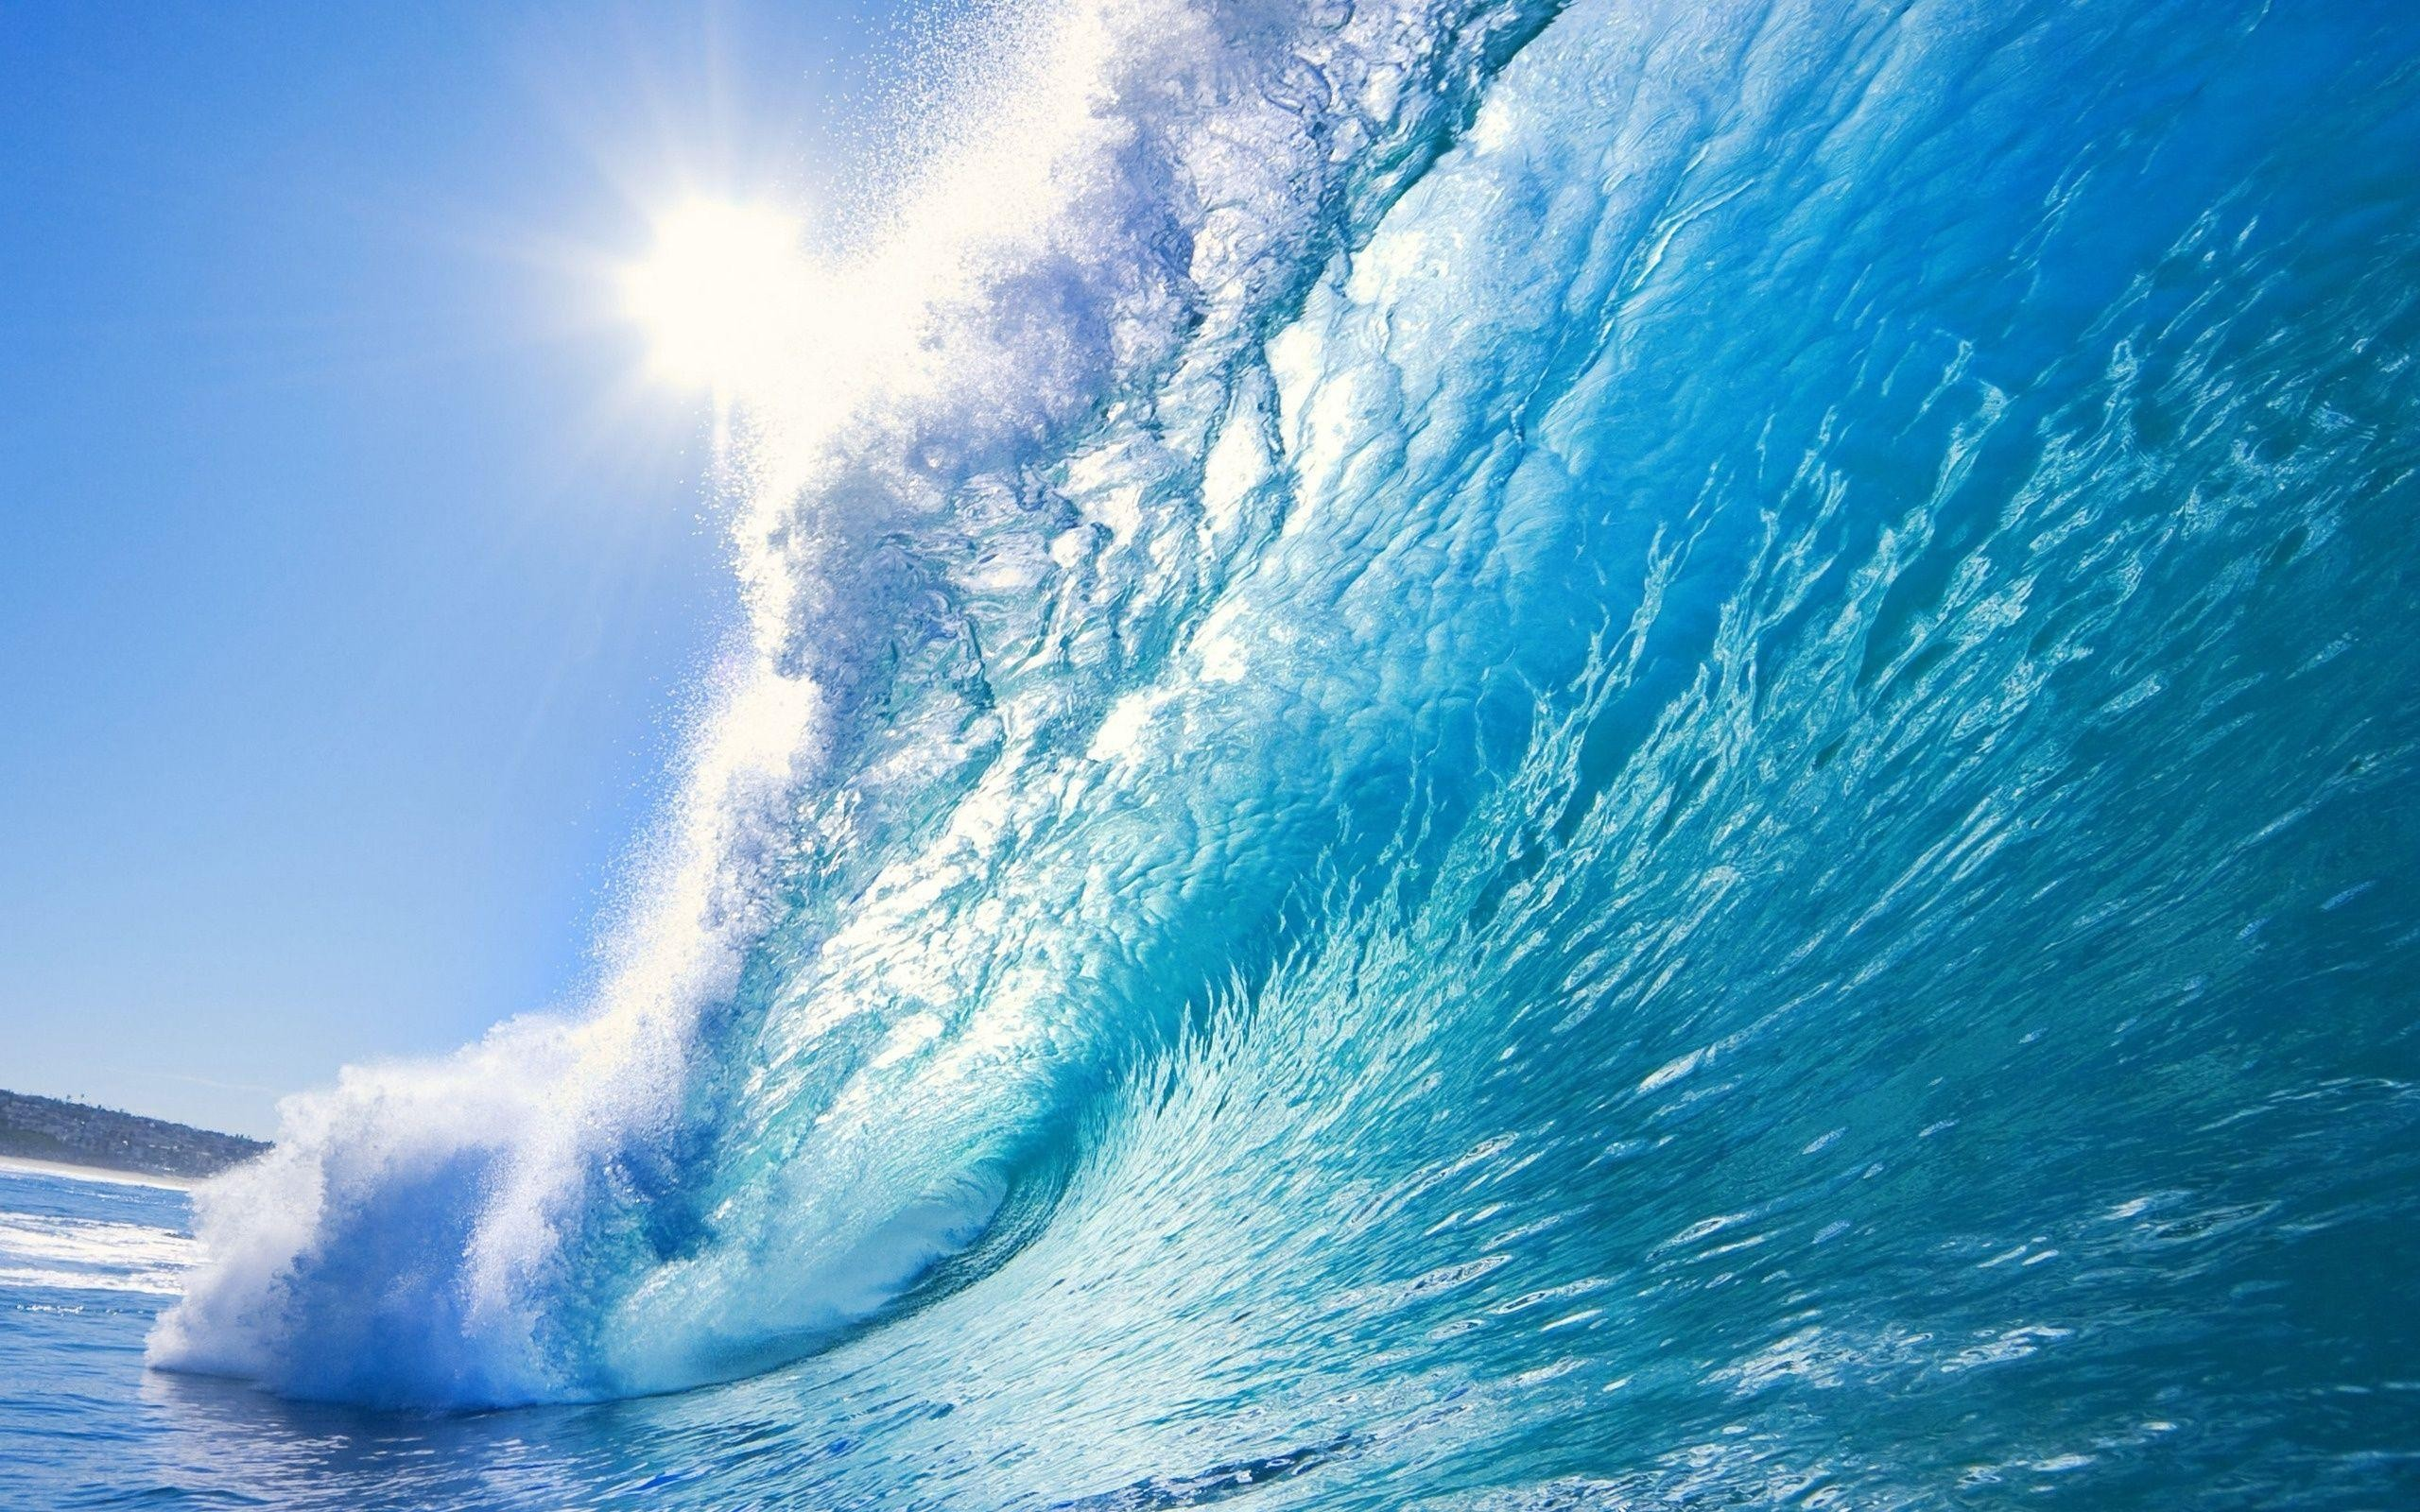 ocean background download free beautiful high resolution